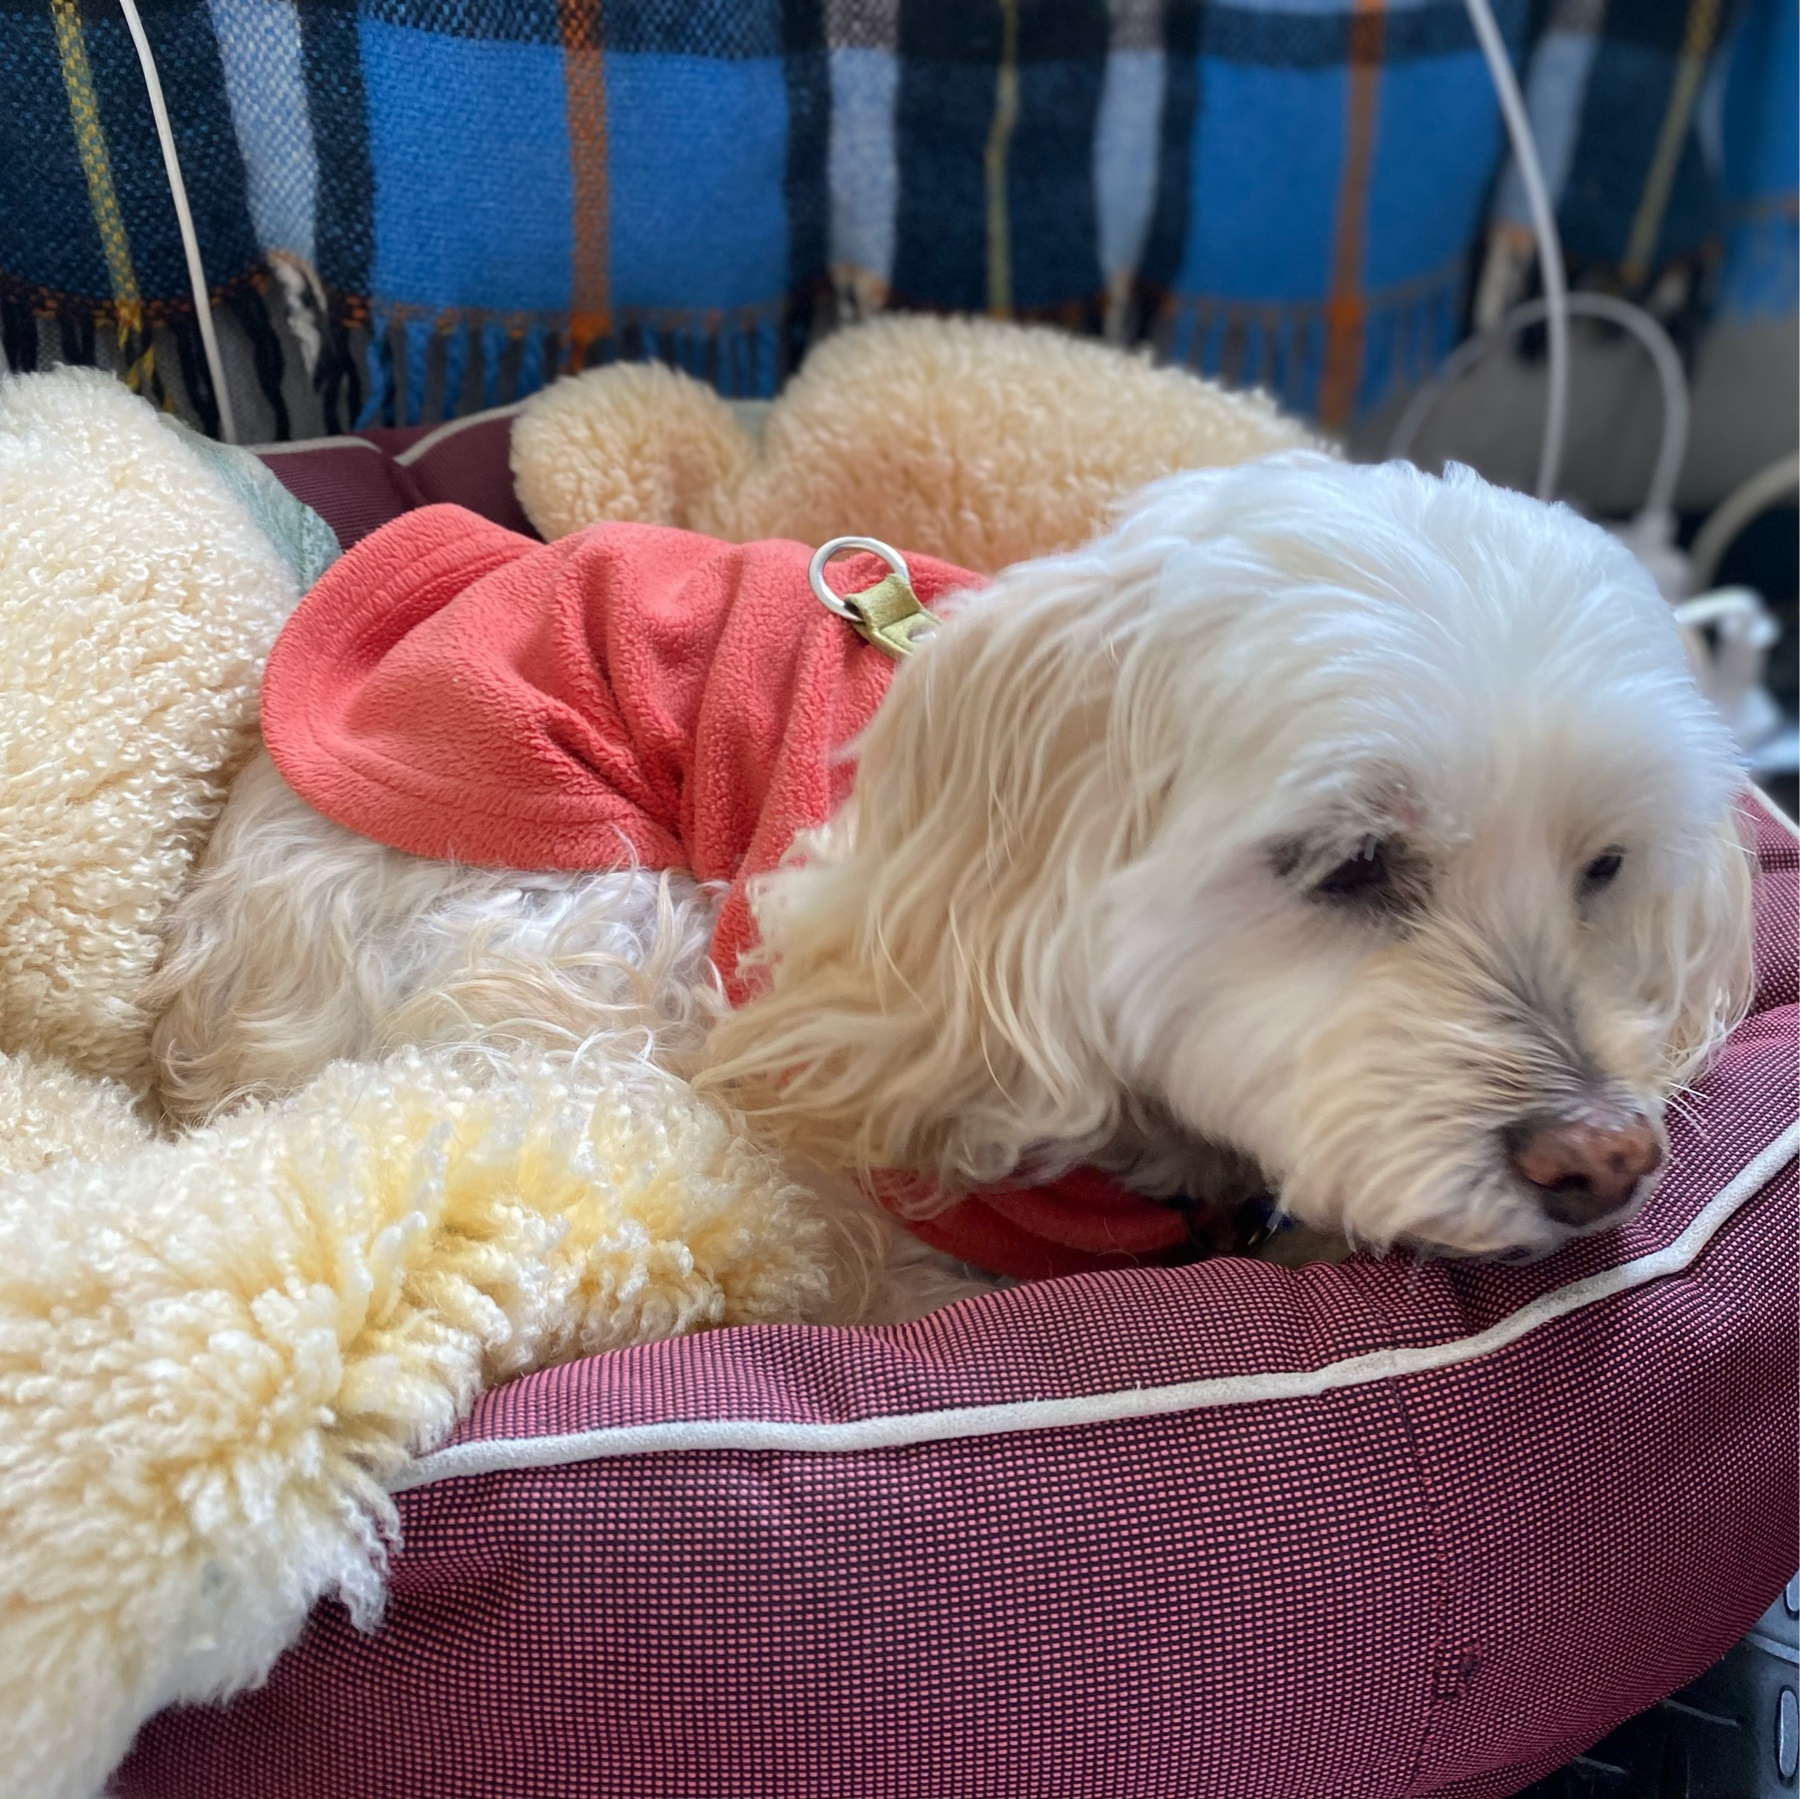 Small white dog in a bed.